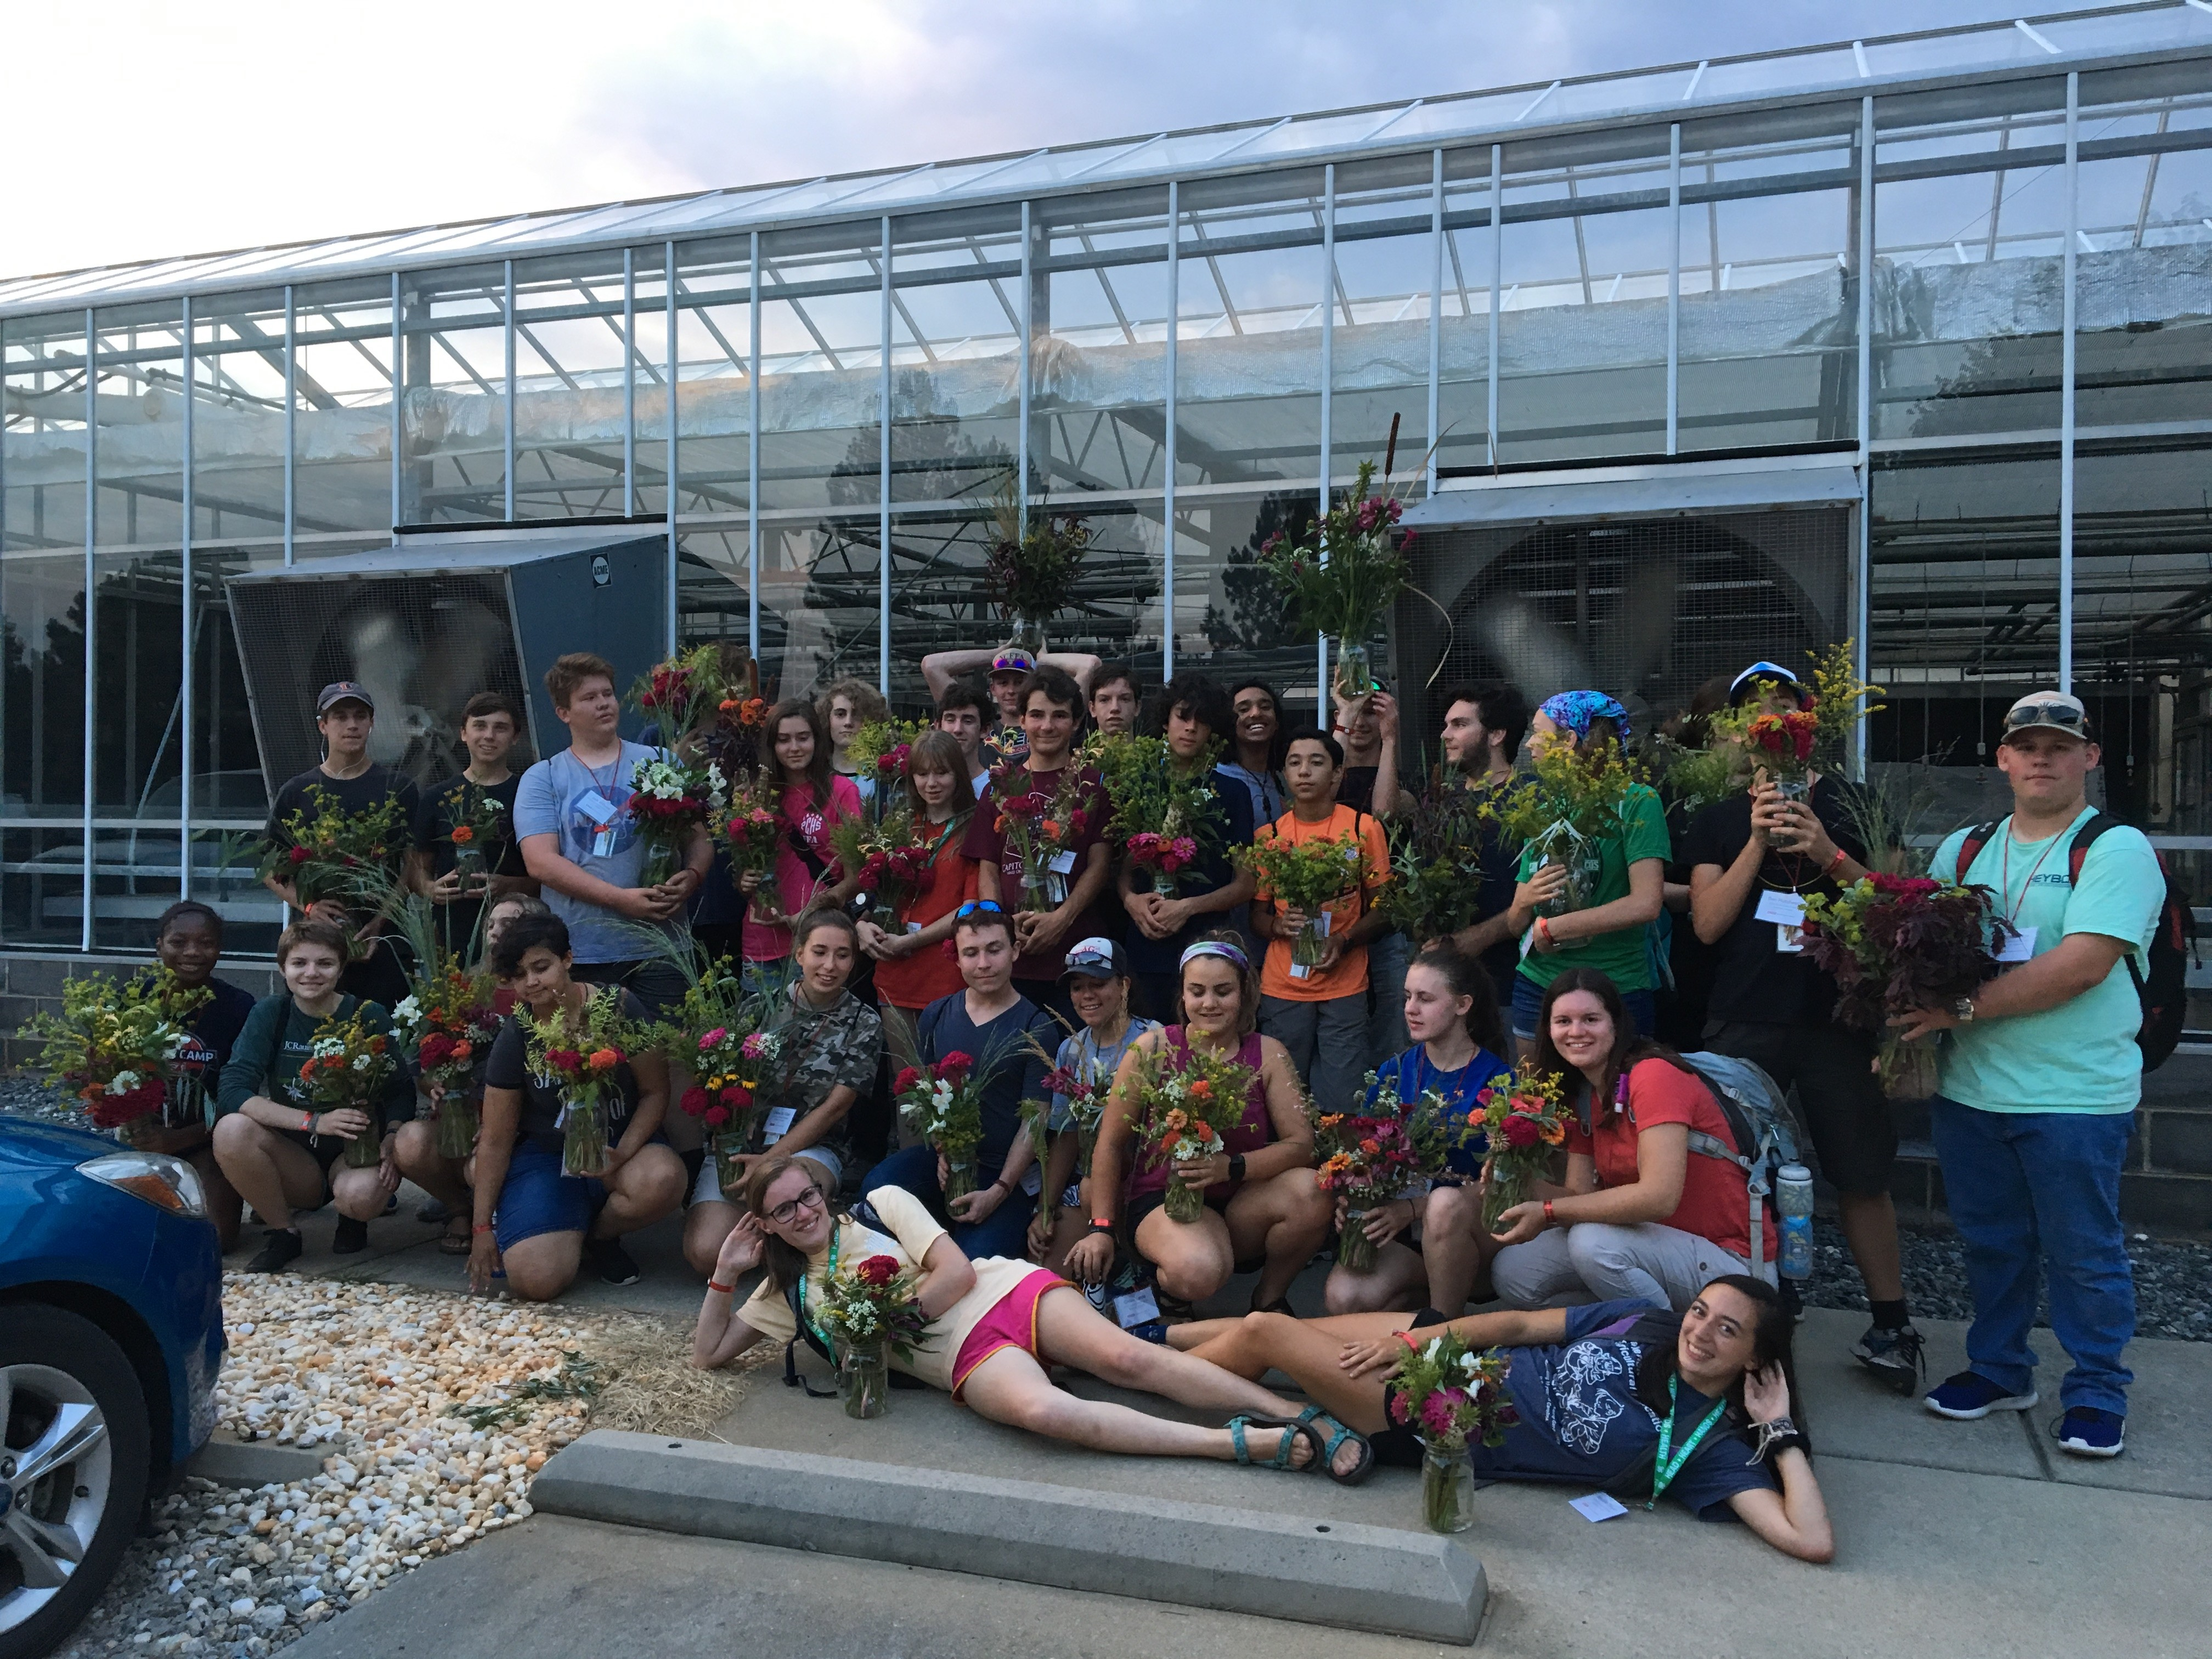 Picture of Horticulture Science Summer Institute students with floral arrangements they made at camp.